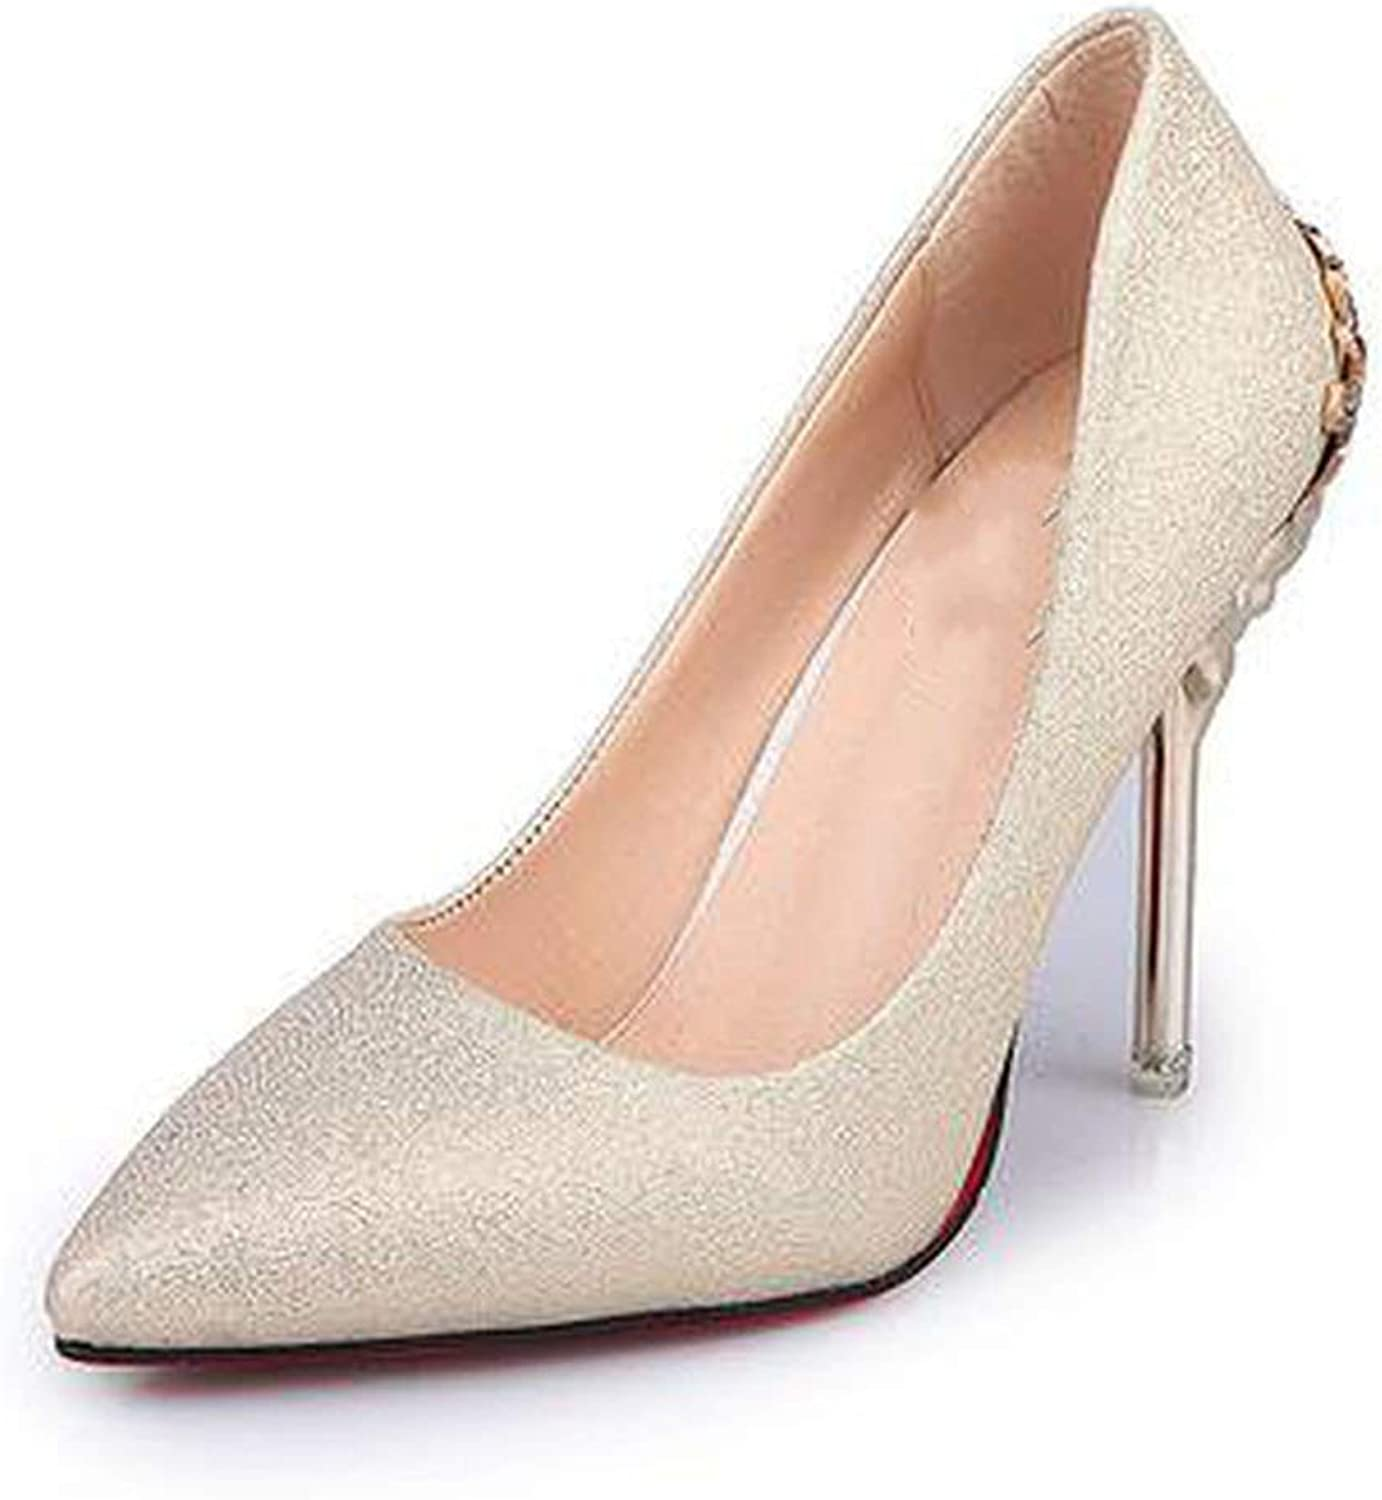 Fortune-god Sexy High Heels shoes Woman Pumps Red gold Silver Wedding Party shoes Fretwork